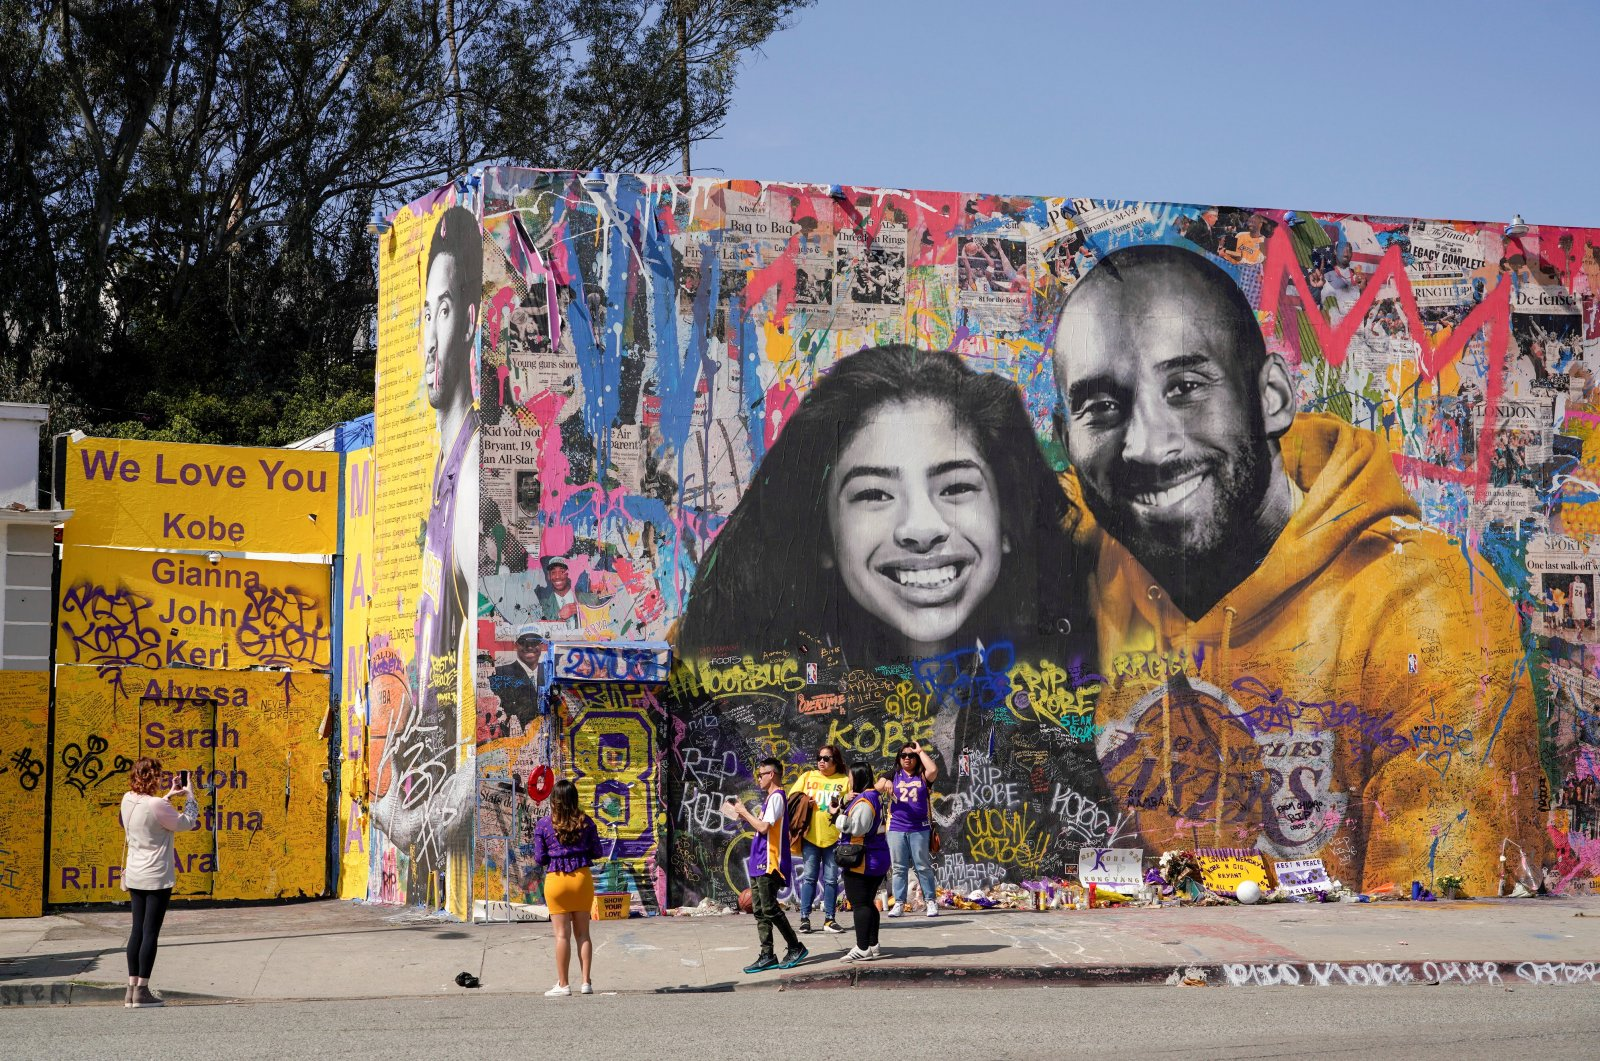 Fans gather around a mural of late NBA great Kobe Bryant and his daughter Gianna Bryant during a public memorial for them and seven others killed in a helicopter crash, at the Staples Center in Los Angeles, California, U.S., February 24, 2020. (Reuters / Kyle Grillot)